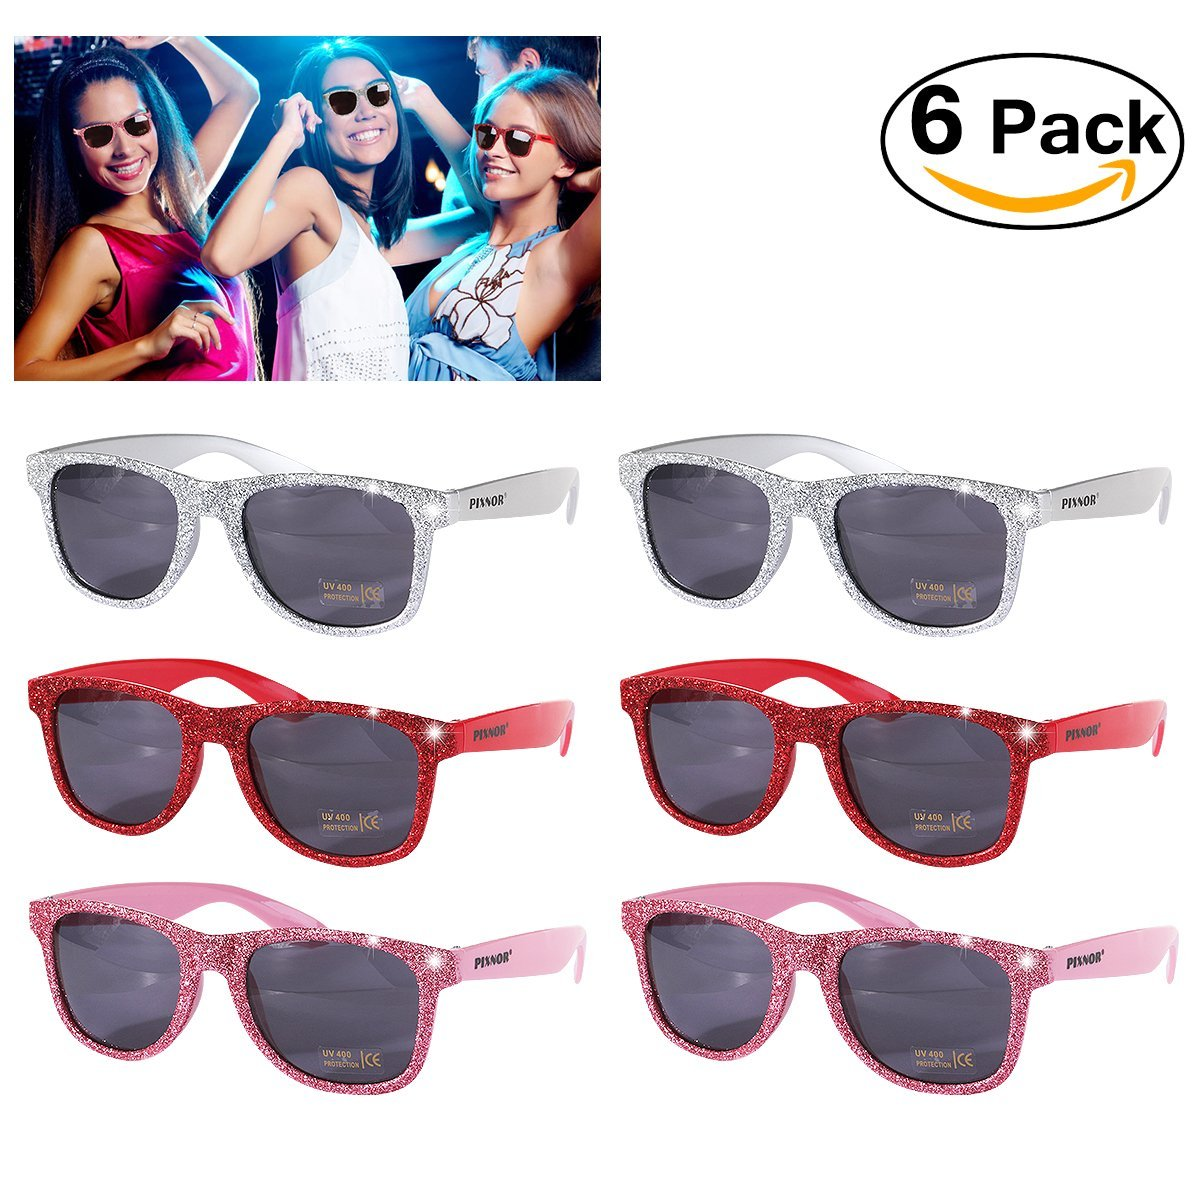 a25edee26d Get Quotations · PIXNOR Party Glitter Sunglasses for Birthday Bachelorette  Luau Party Supplies (6 Pack)